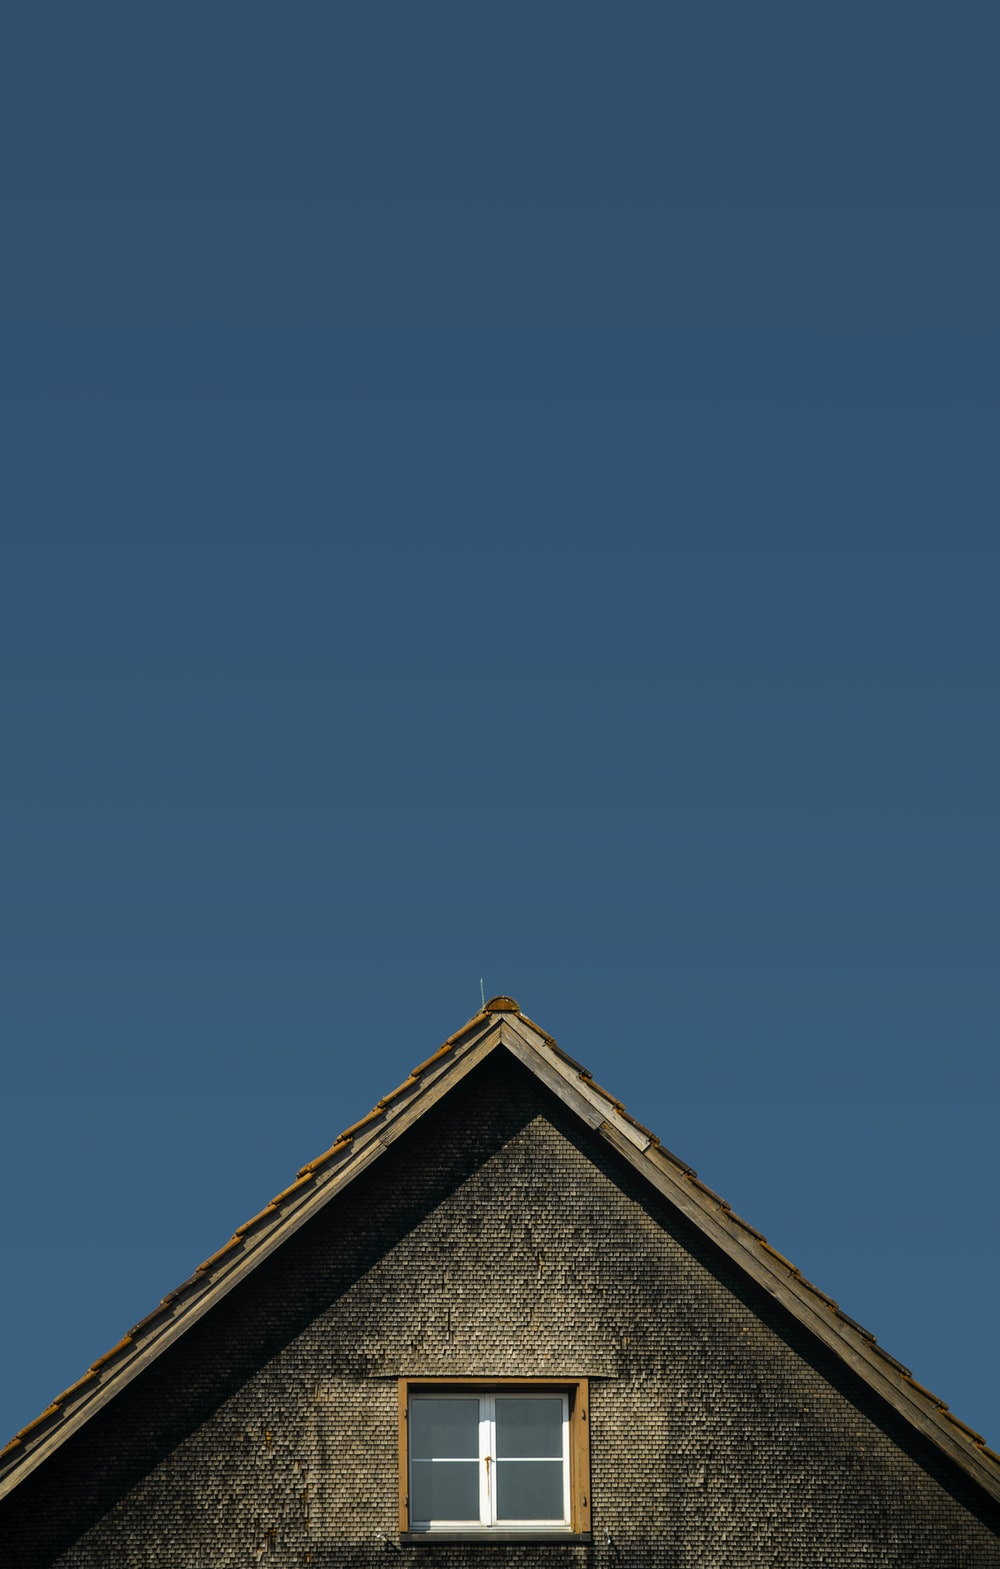 brown and gray house under blue sky during daytime